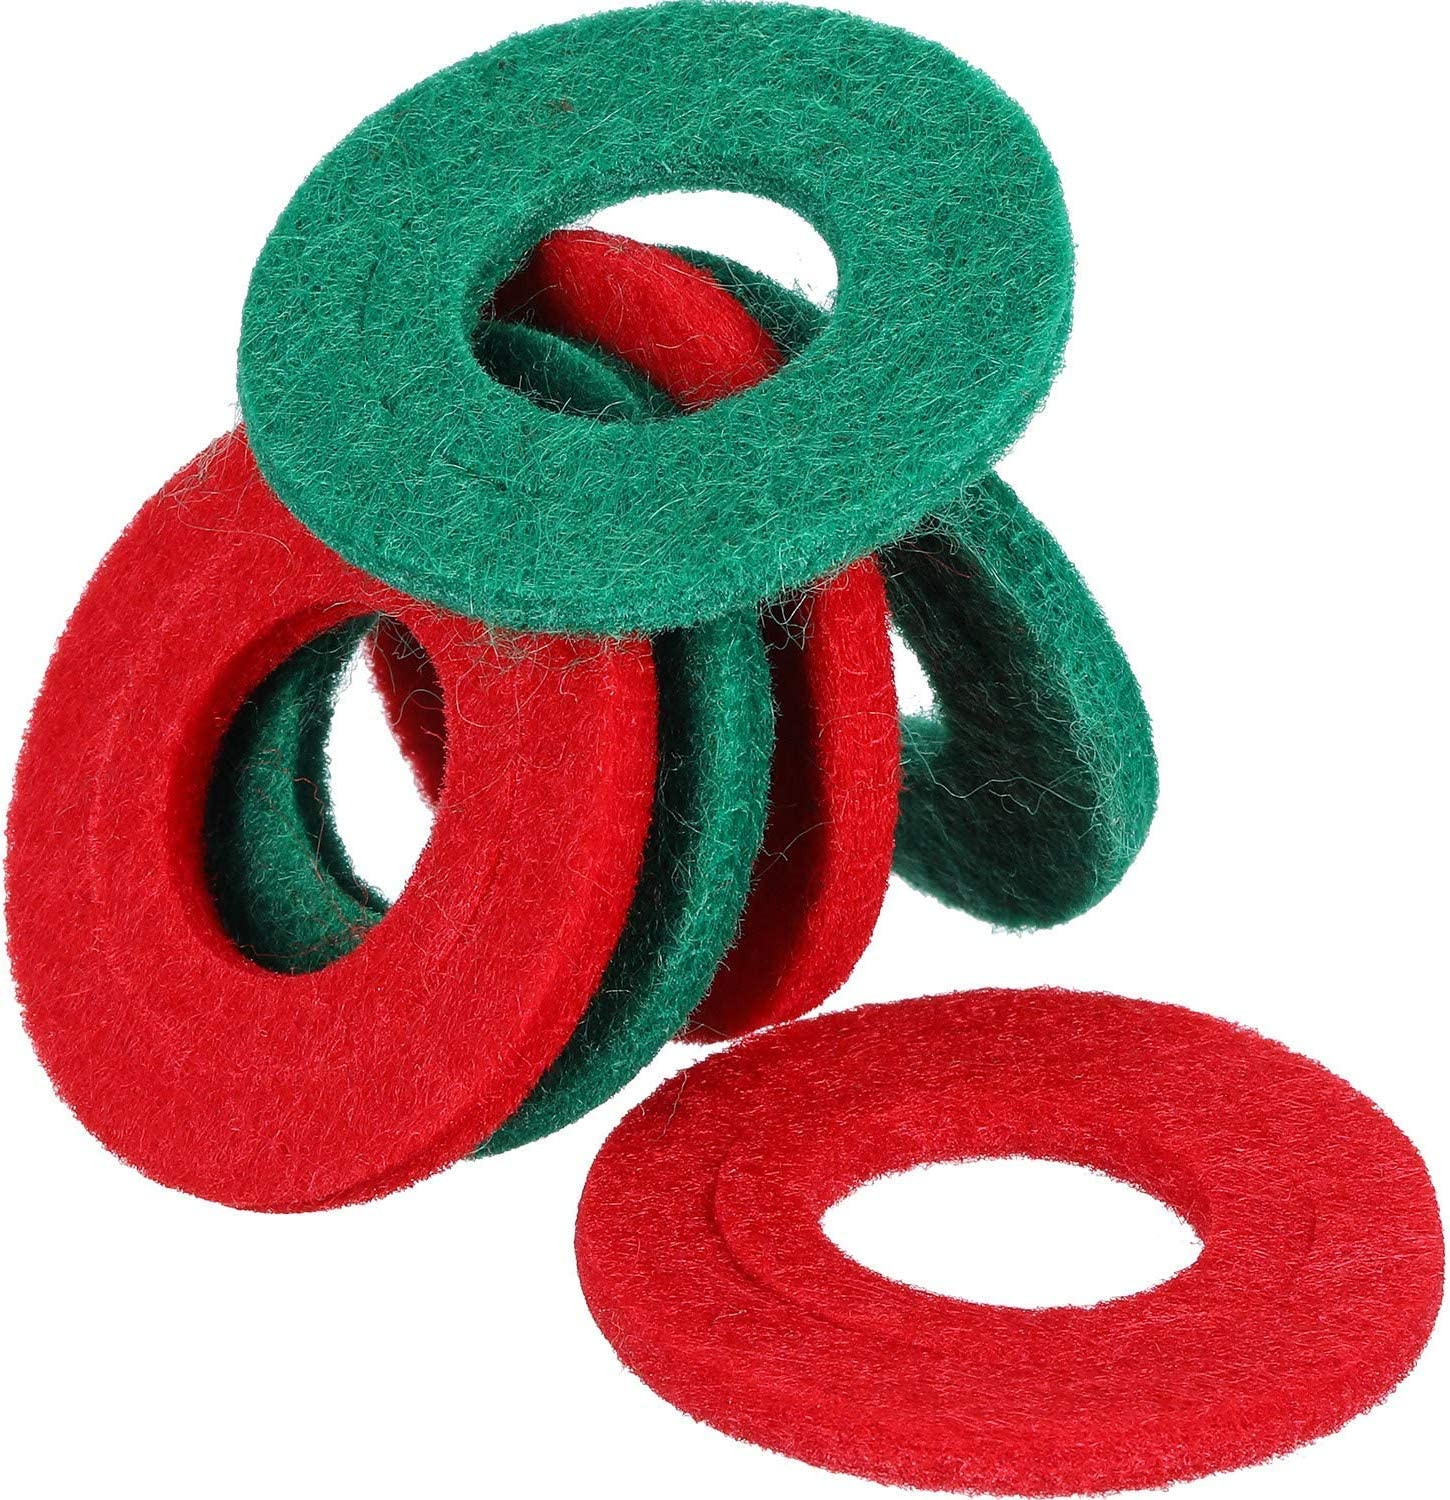 DishyKooker Battery Terminal Protector 12 Pieces Battery Terminal Anti Corrosion Washers Fiber 6 Red and 6 Green Car Motorcycle